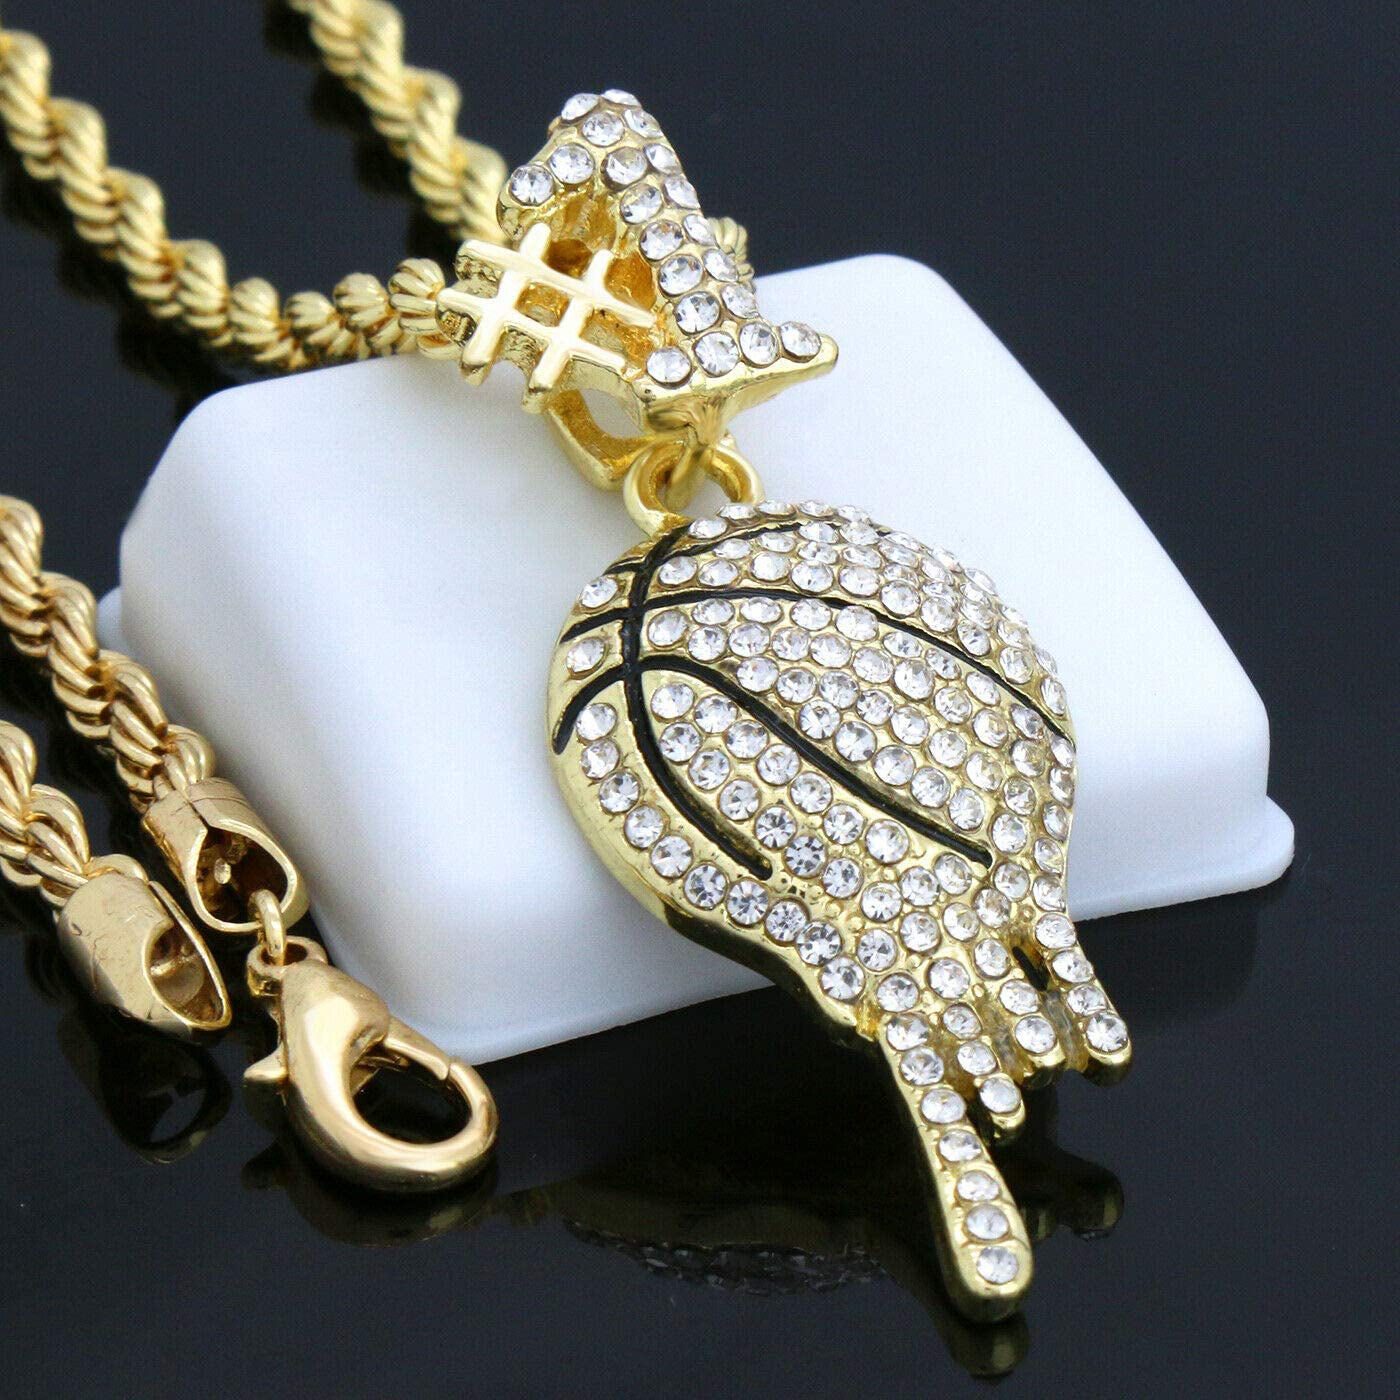 Anniversaries Gold ARB Market 24 Inch 14K Gold Pt Rope Choker Chain Fully Cz Drip Basketball Pendant Fashion For Men And Women In Birthdays Holidays And Any Other Special Occasions